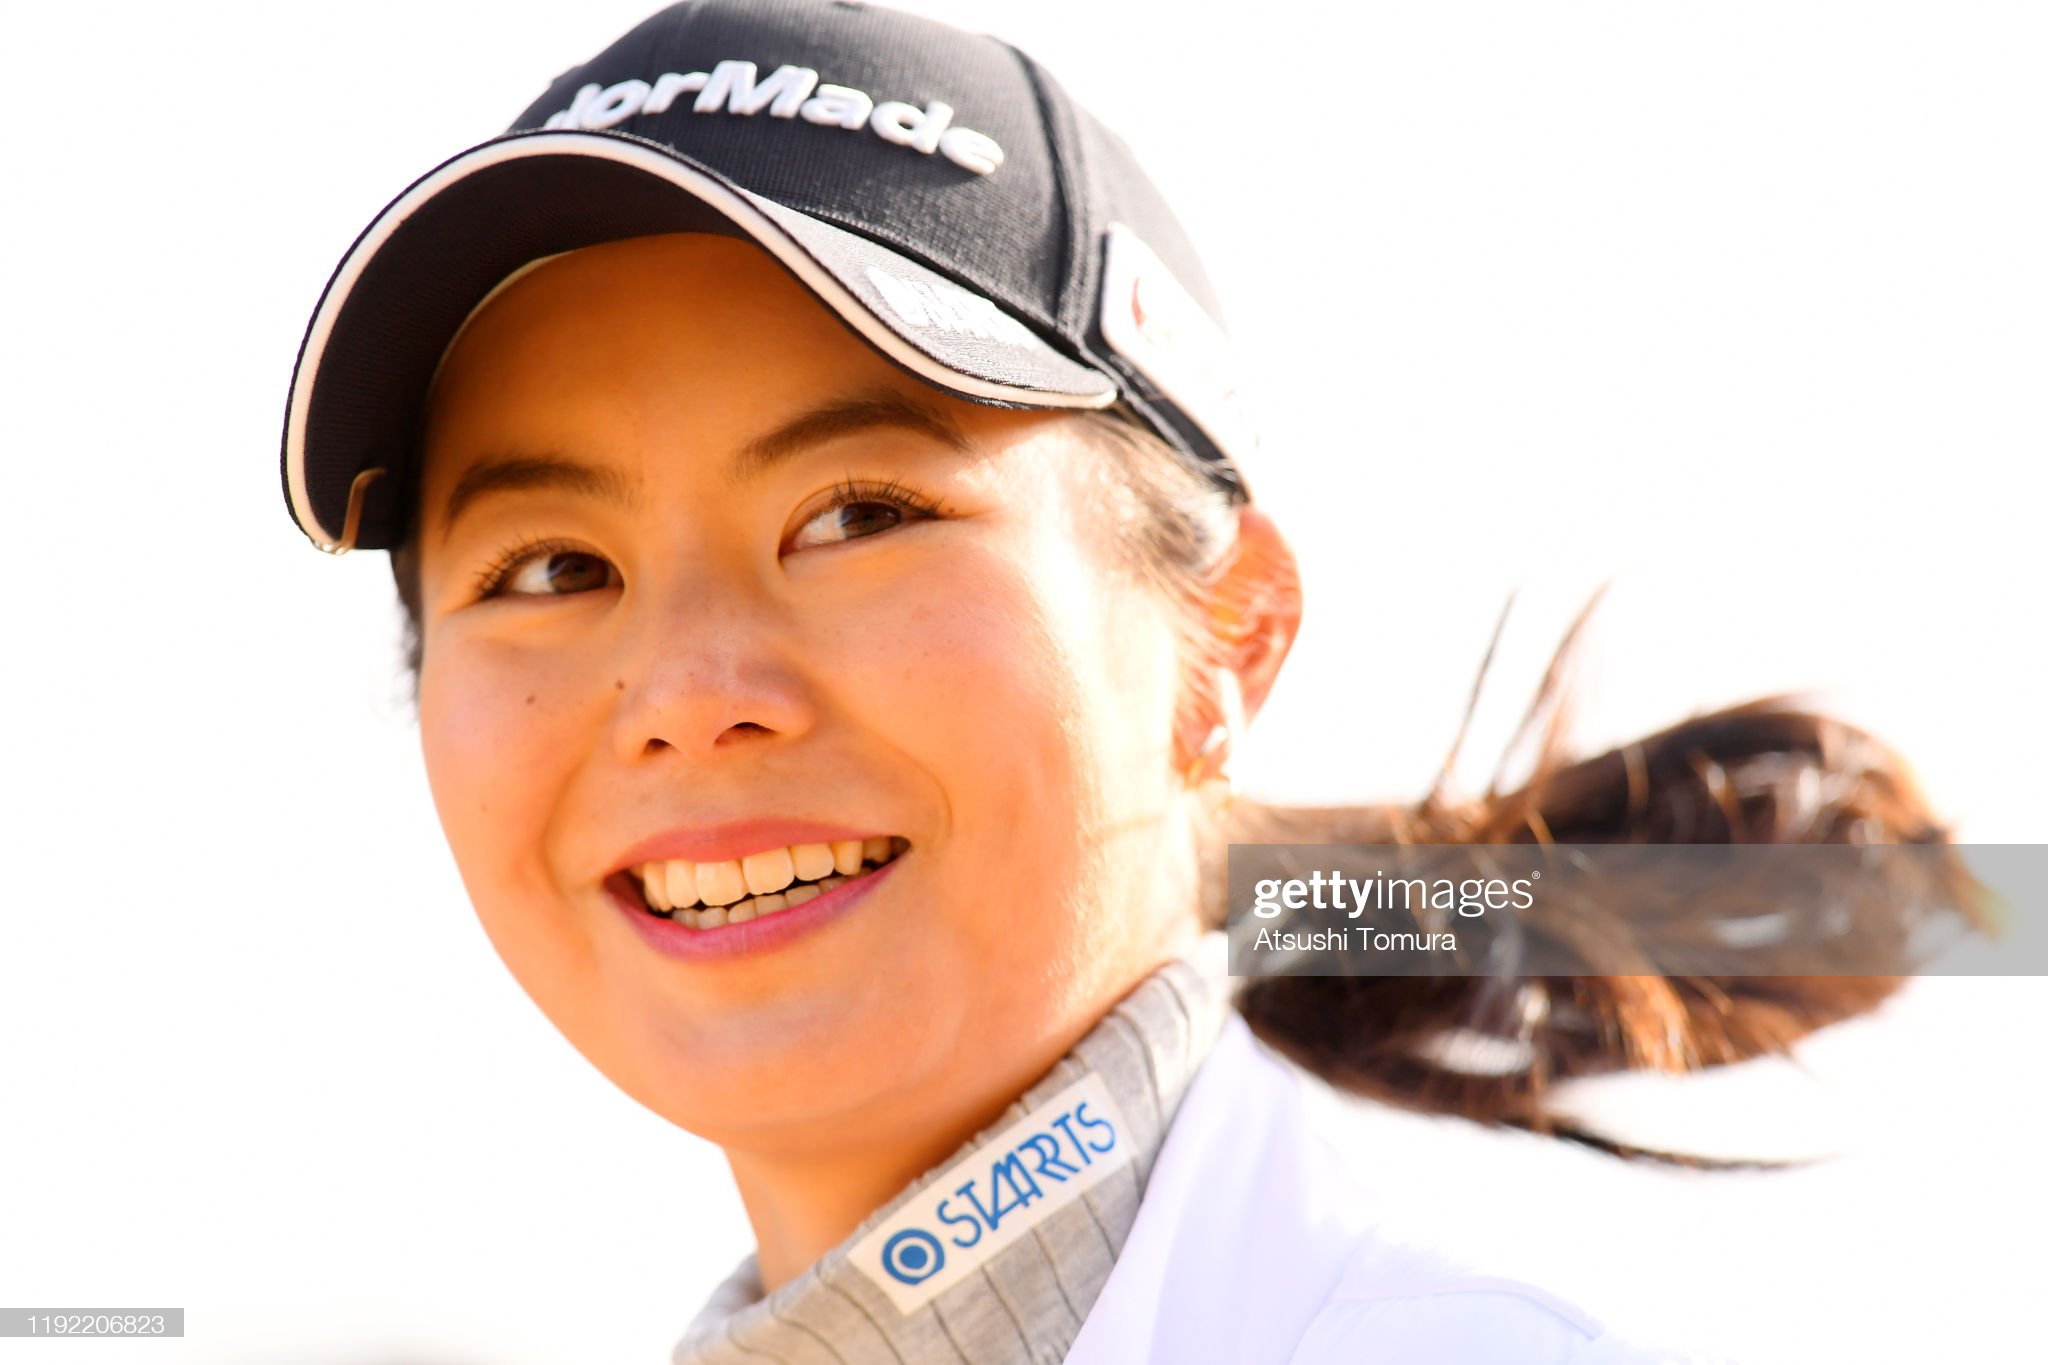 https://media.gettyimages.com/photos/ayaka-matsumori-of-japan-smiles-after-her-tee-shot-on-the-1st-hole-picture-id1192206823?s=2048x2048